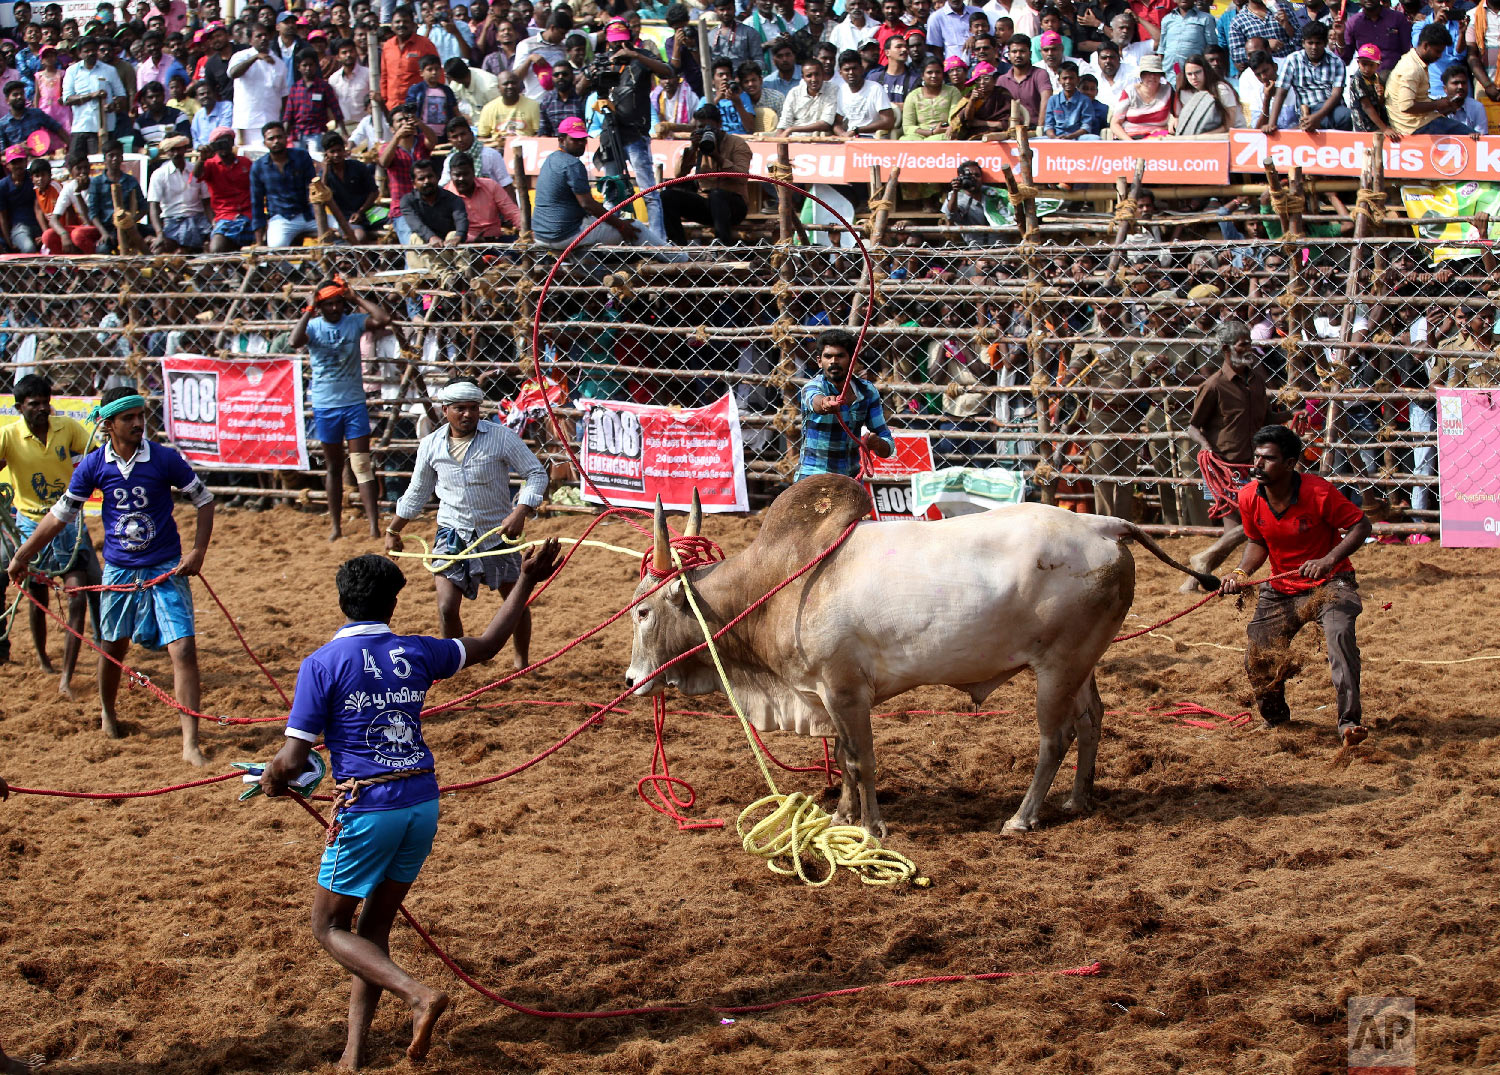 Owners and others use ropes to control a bull during a traditional bull-taming festival called Jallikattu, in the village of Palamedu, near Madurai, Tamil Nadu state, India, Wednesday, Jan. 16, 2019. (AP Photo/Aijaz Rahi)